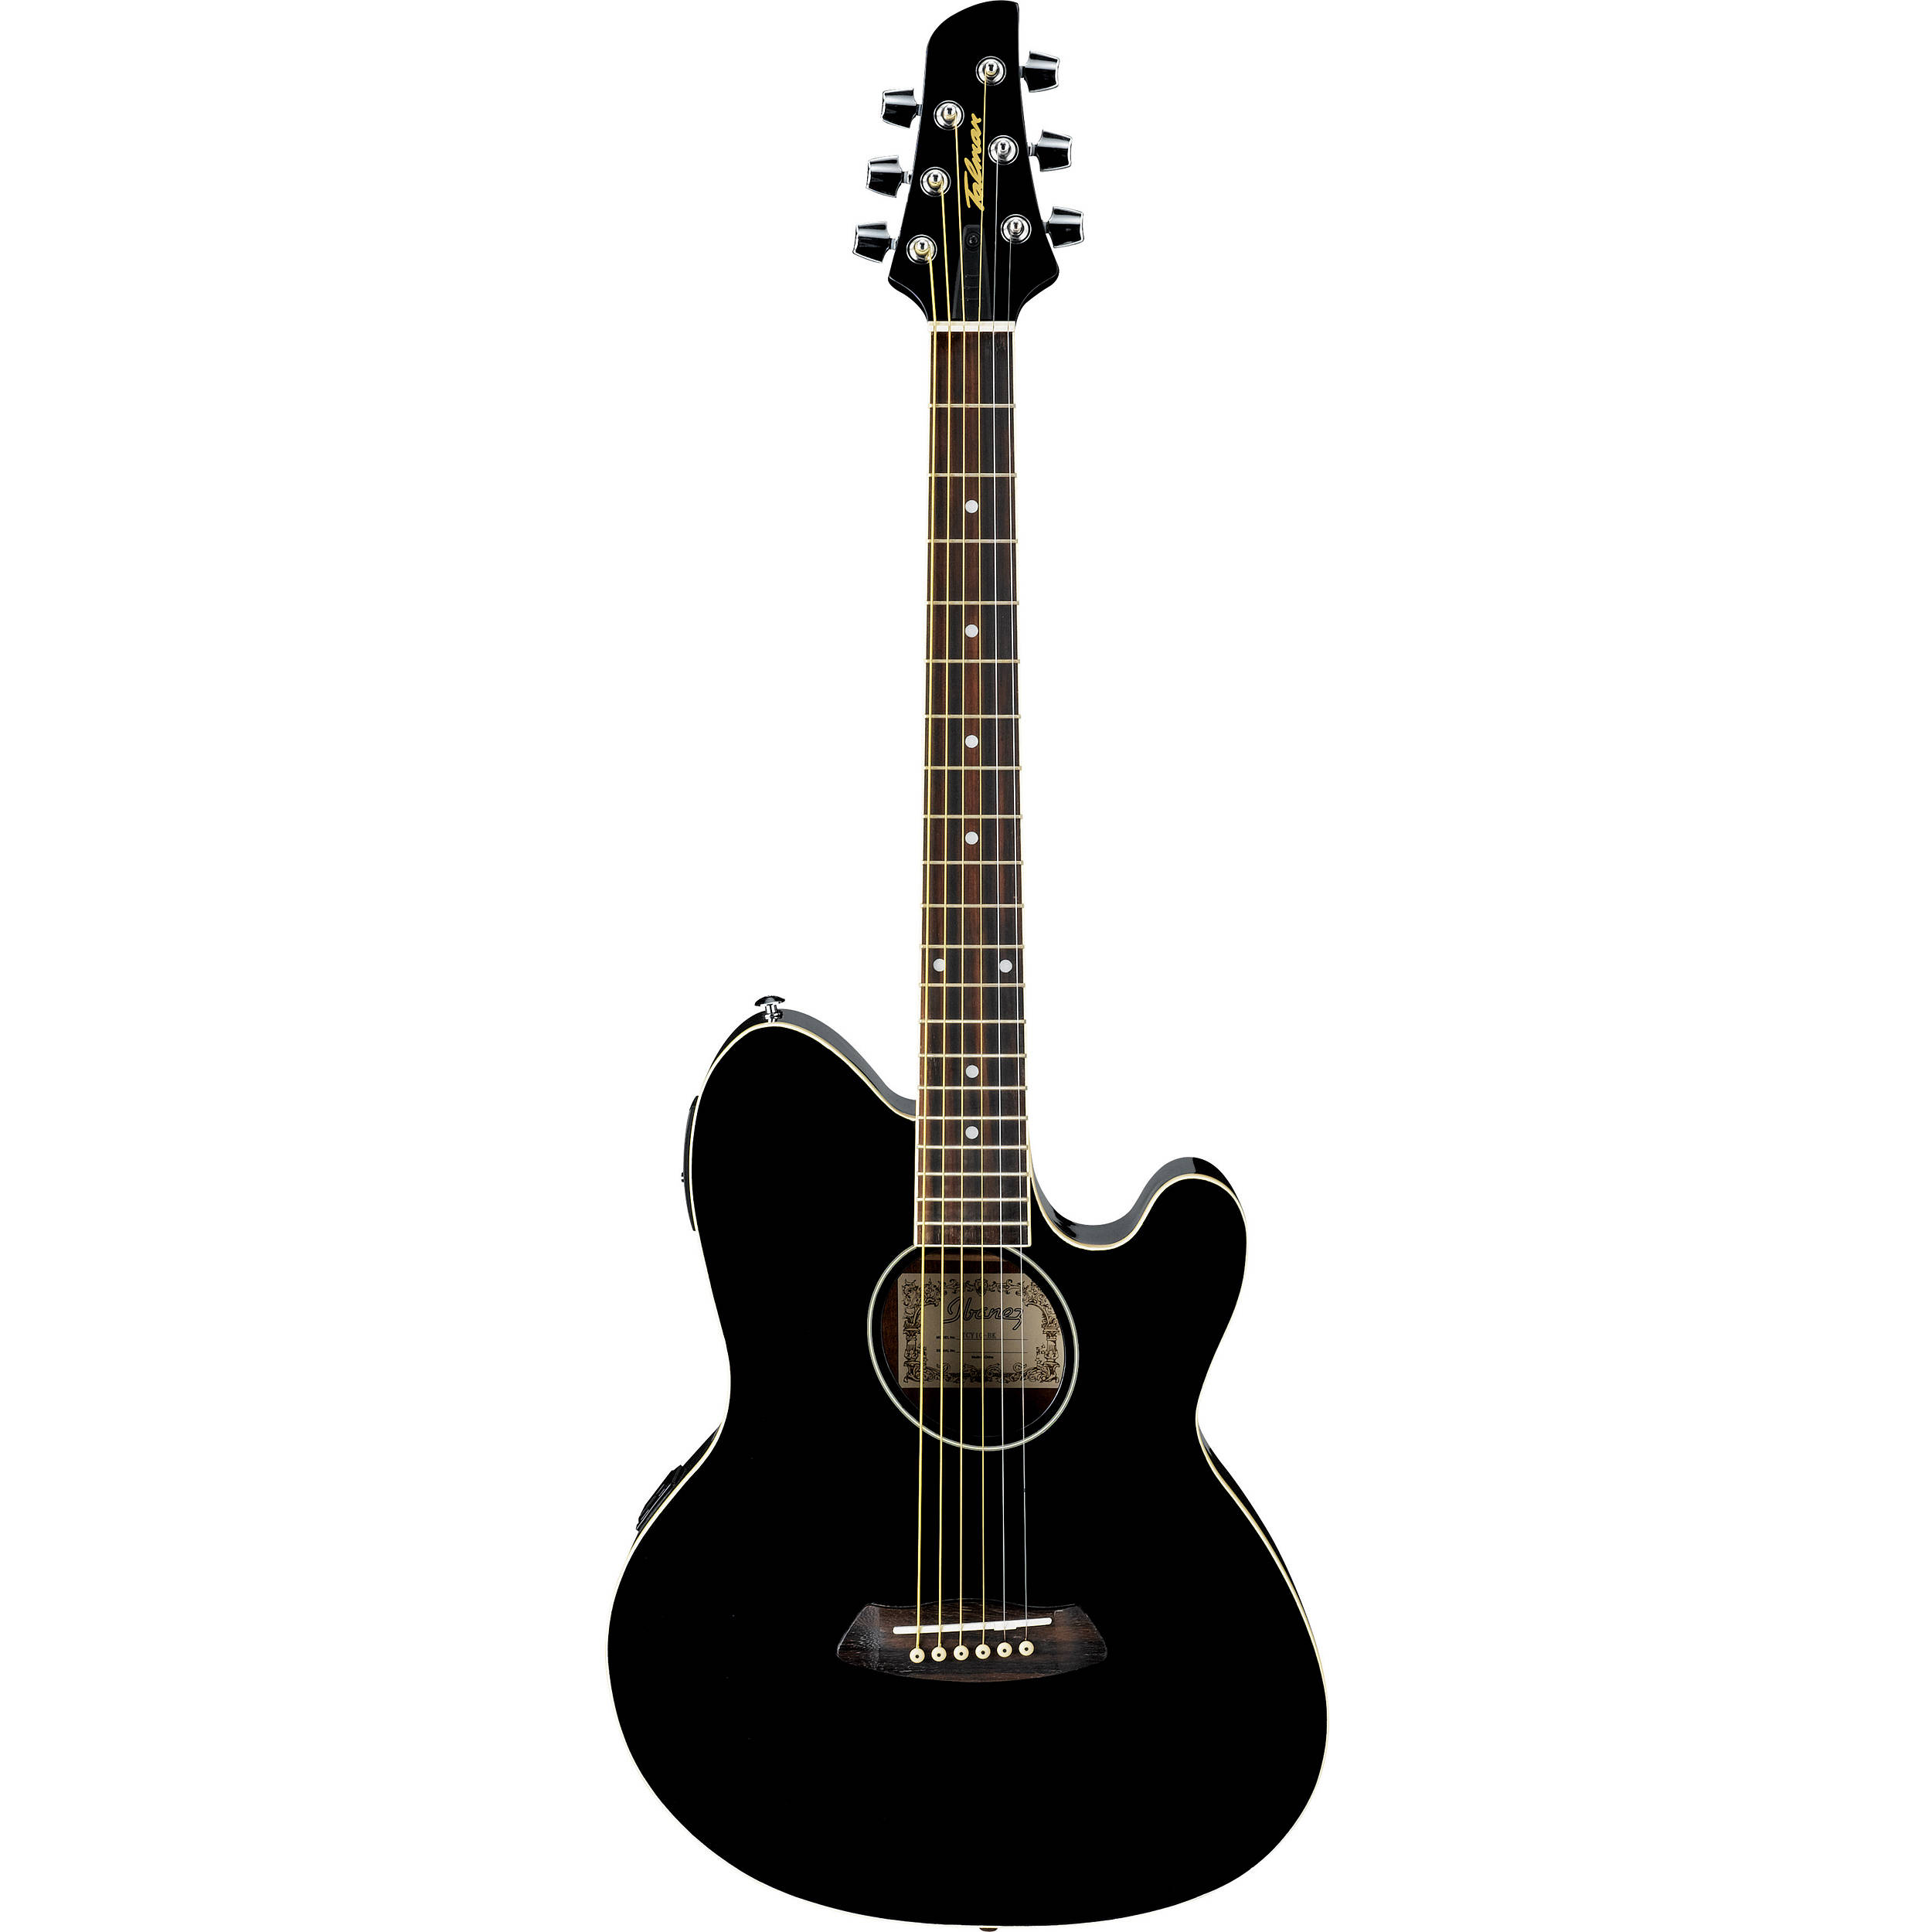 ibanez tcy10e talman series acoustic electric guitar tcy10ebk. Black Bedroom Furniture Sets. Home Design Ideas